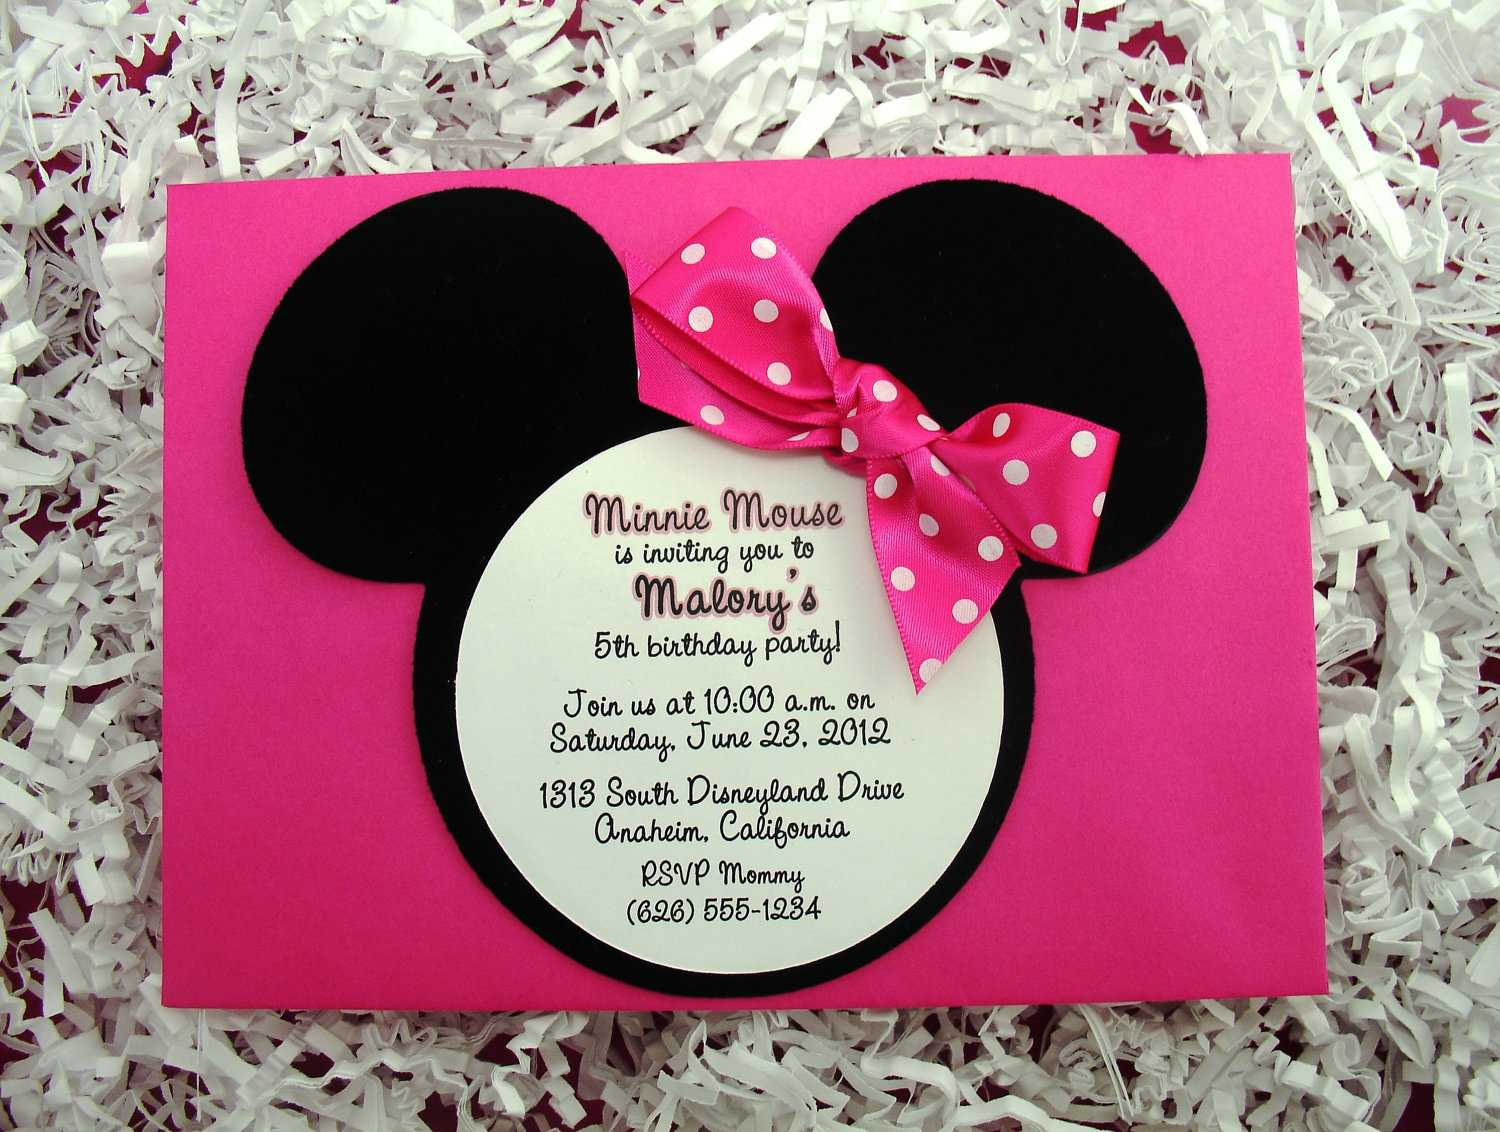 birthday invitation minnie mouse theme ; d1127b4ca895ae2929b2d6e66f9d5c6f